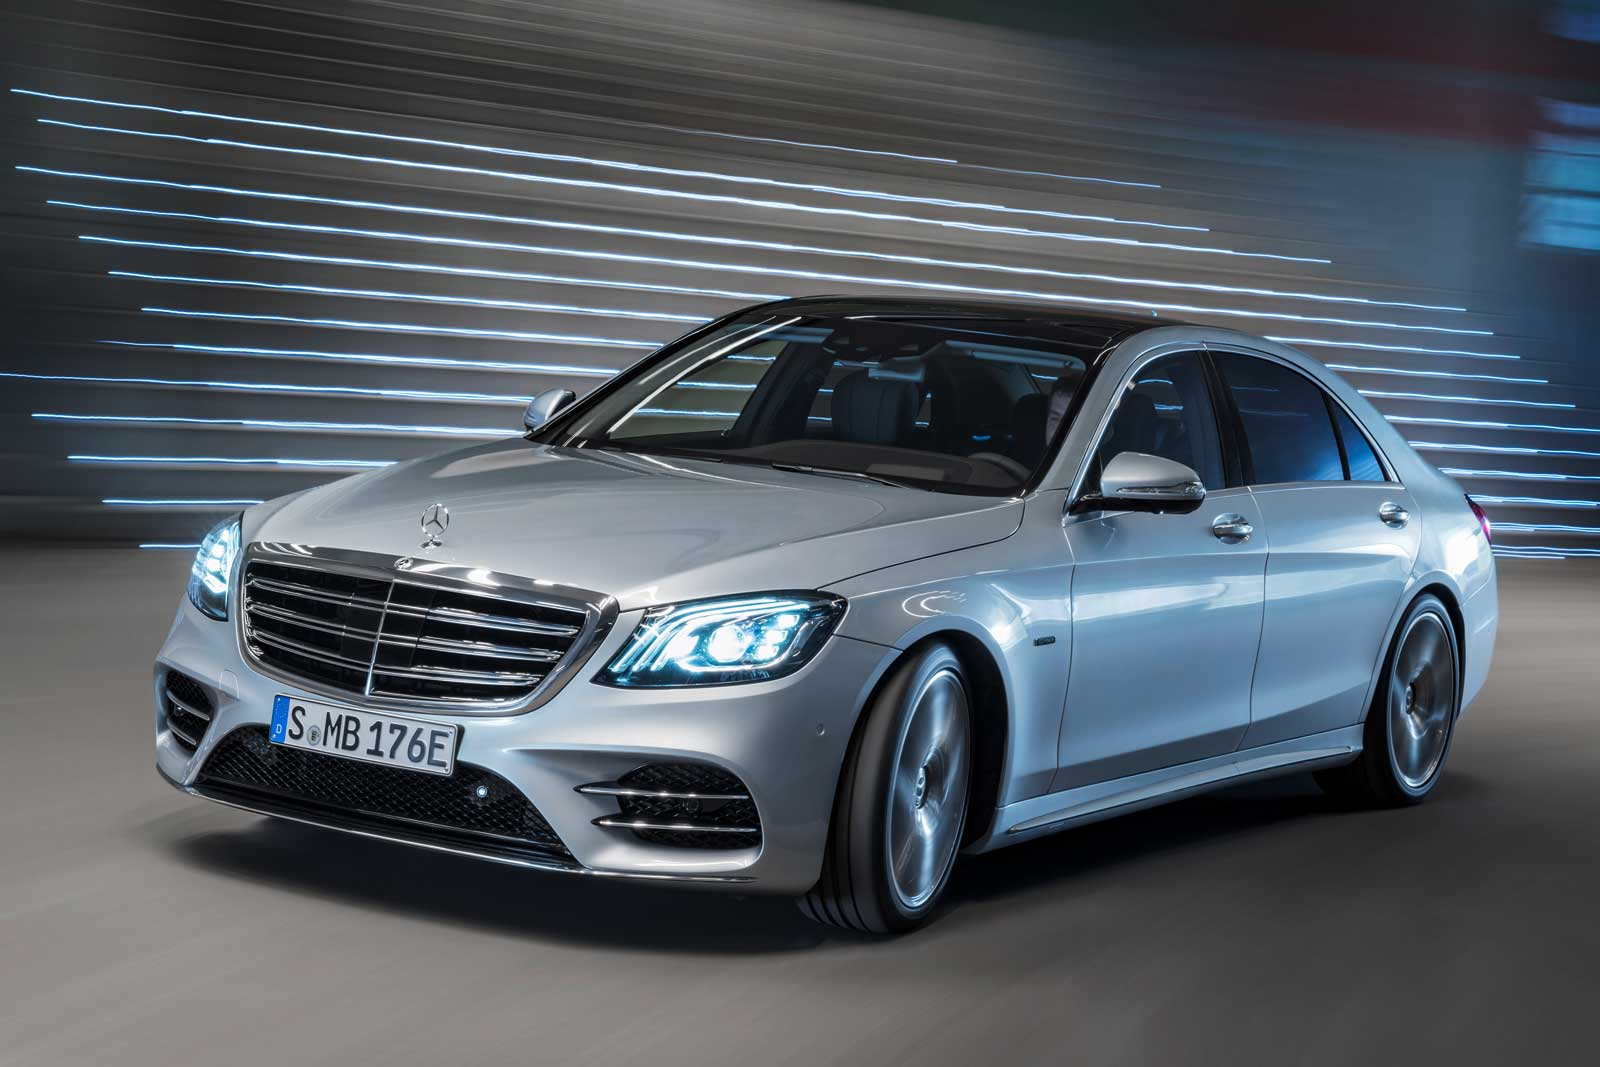 mercedes pulls its plug in hybrids to prepare for new models